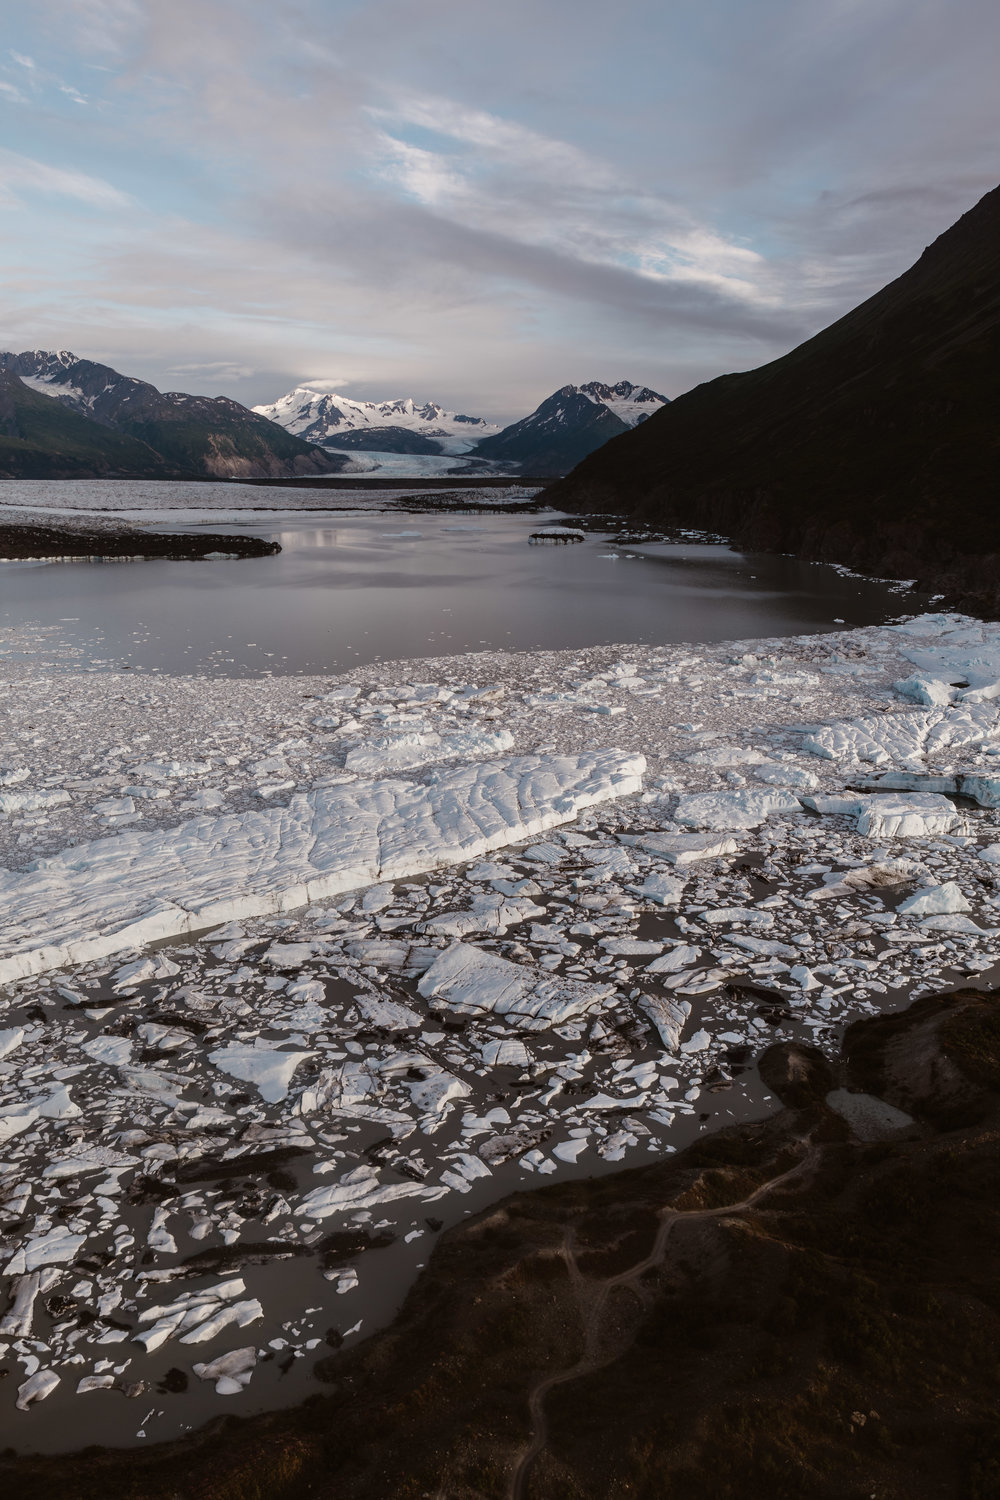 This photo shows views of an Alaska glacial landscape, including a rocky beach, a glacial lake with enormous chunks of ice floating in it, and snowy mountains peaks in the backdrop. All of this can be seen from a birds-eye-view of from the helicopter carrying the bride and groom to their destination elopement spots.